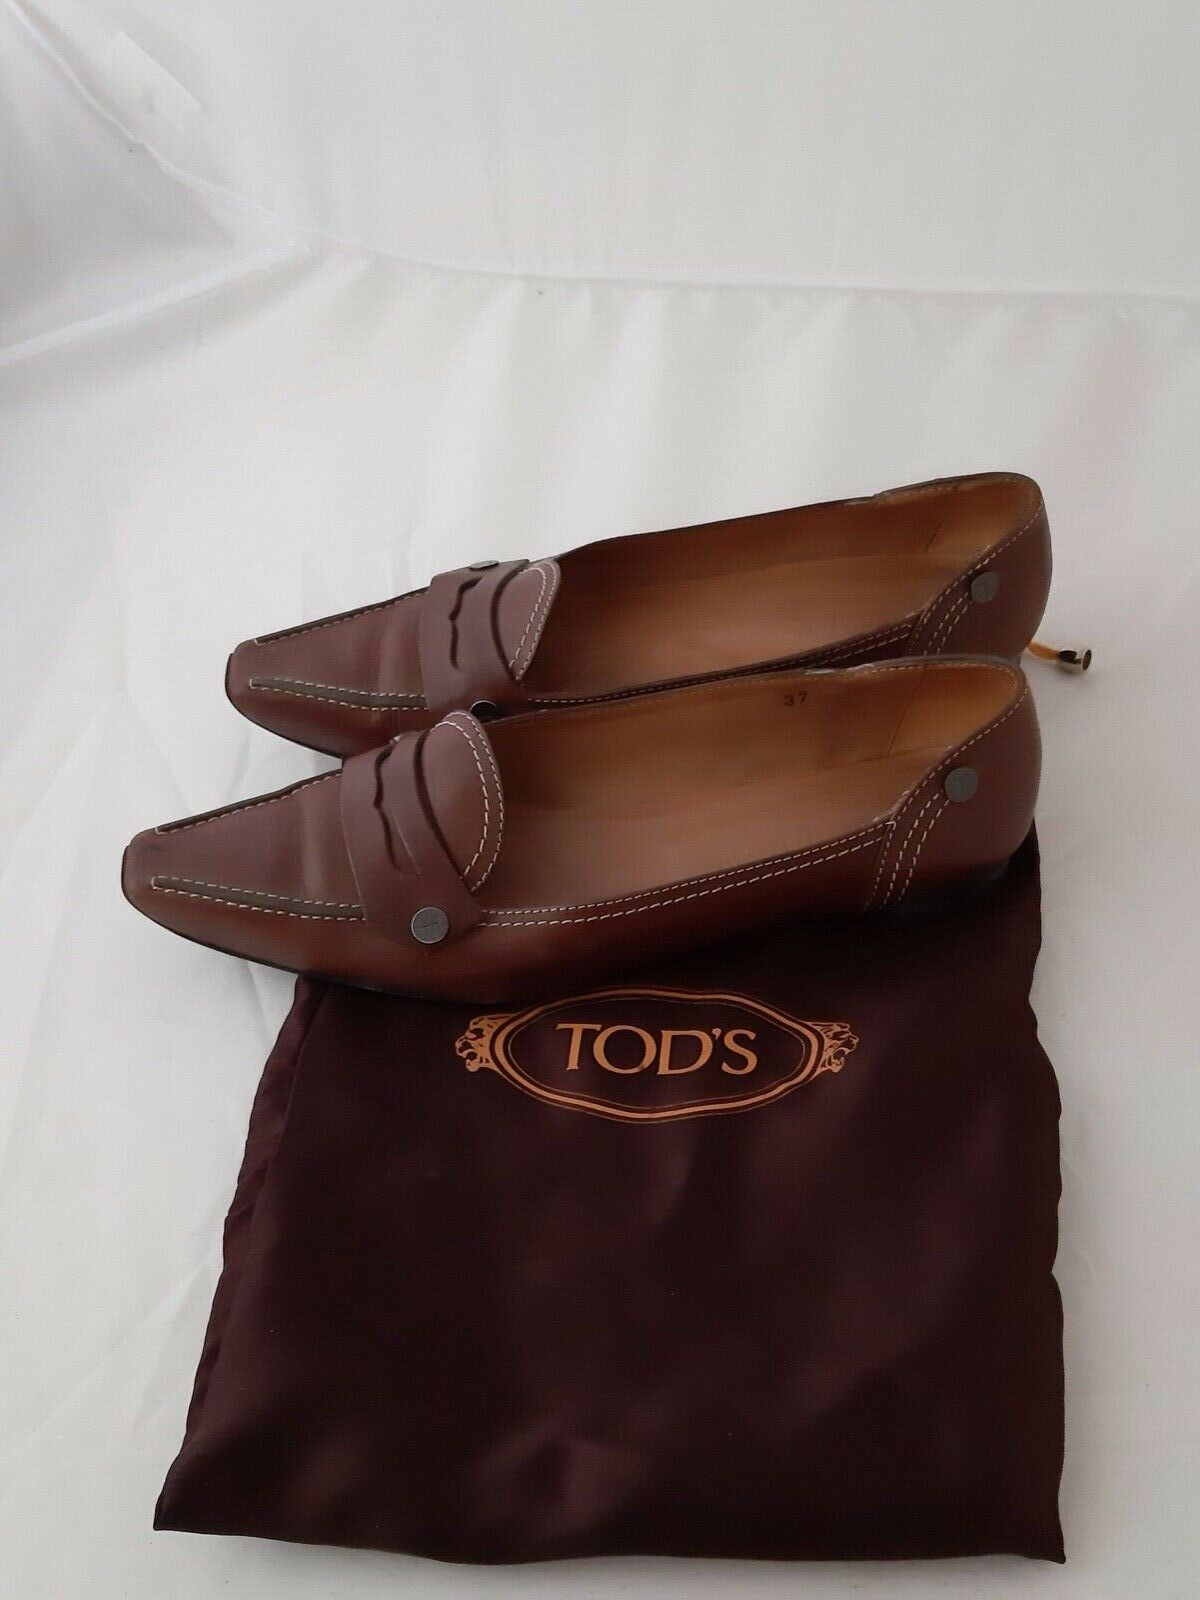 Tod's Brown Brown Brown leather shoes size 37 ba3f27